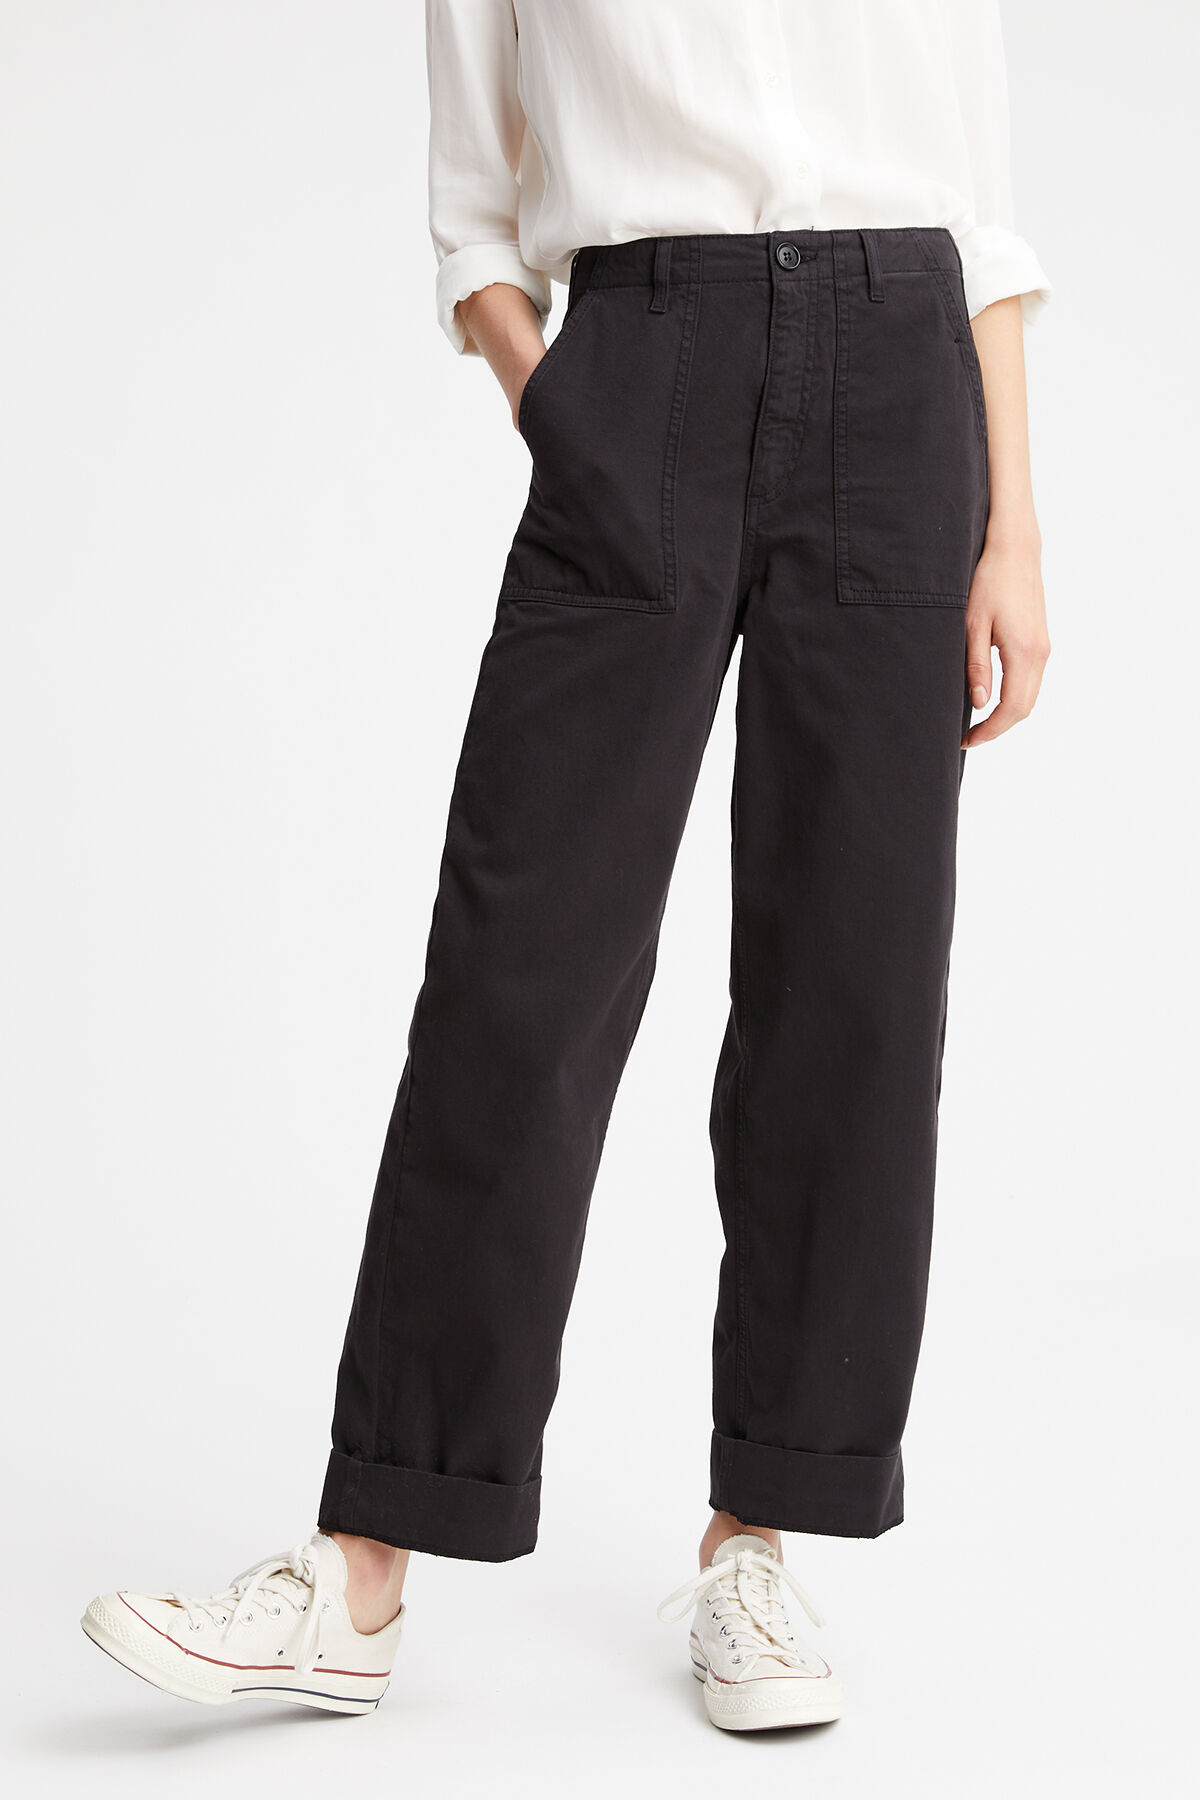 HAWTHORN CARGO PANT Soft-touch, cotton twill - Wide Leg